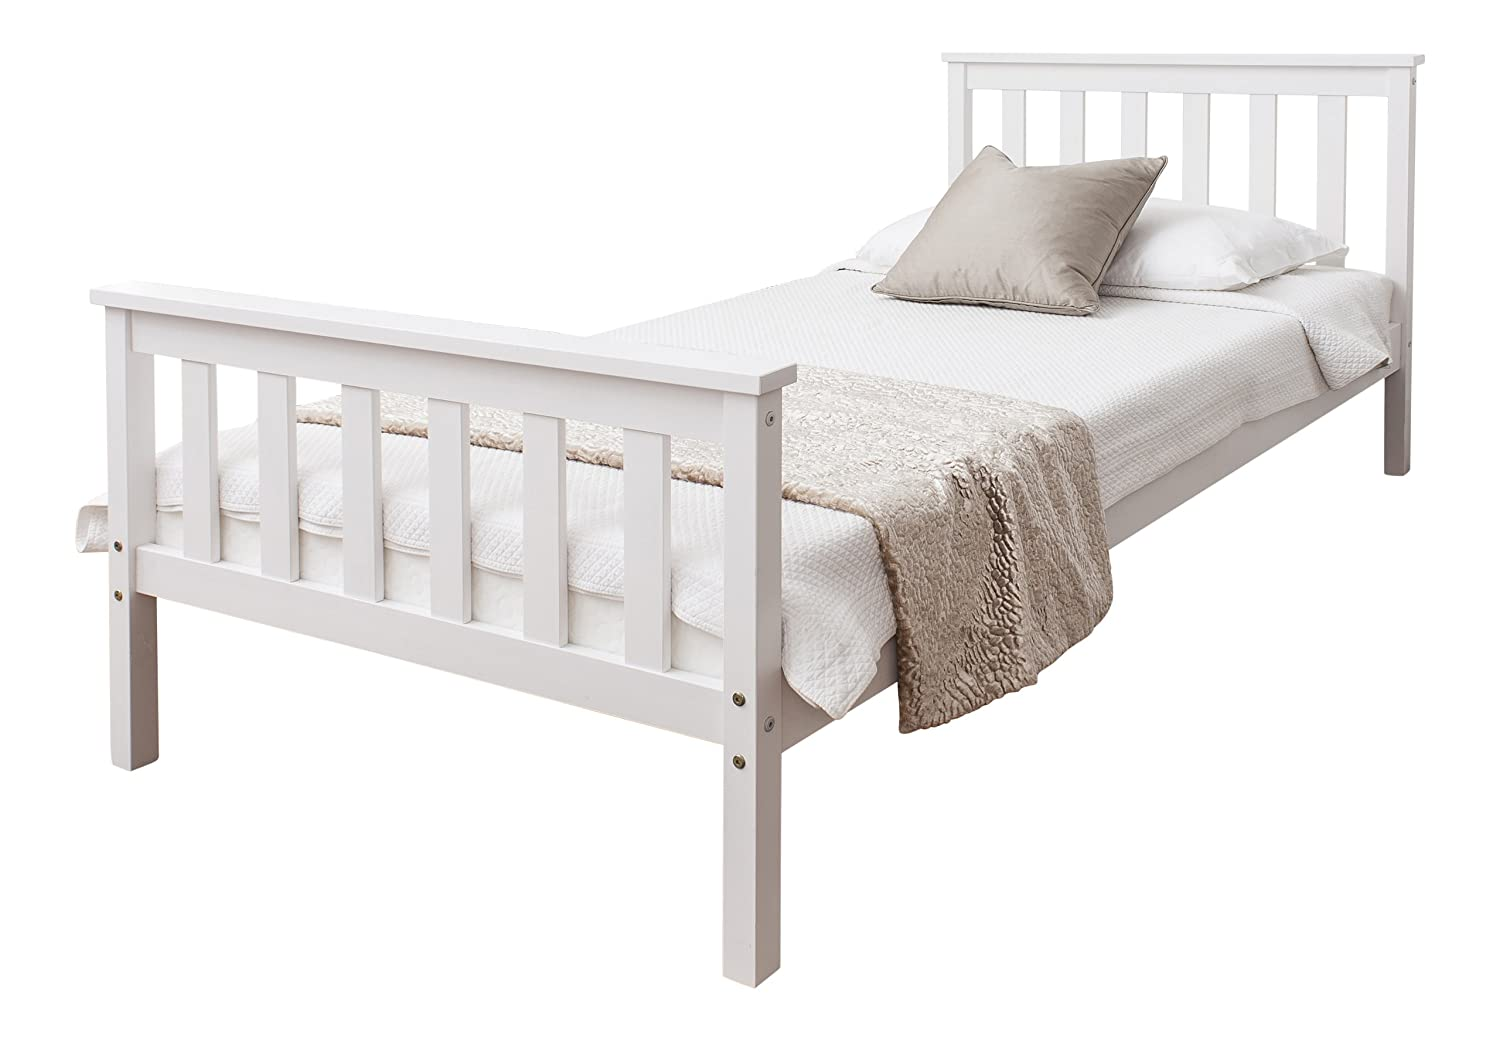 frame range stompa classic for lifestyle single beds bensons bed